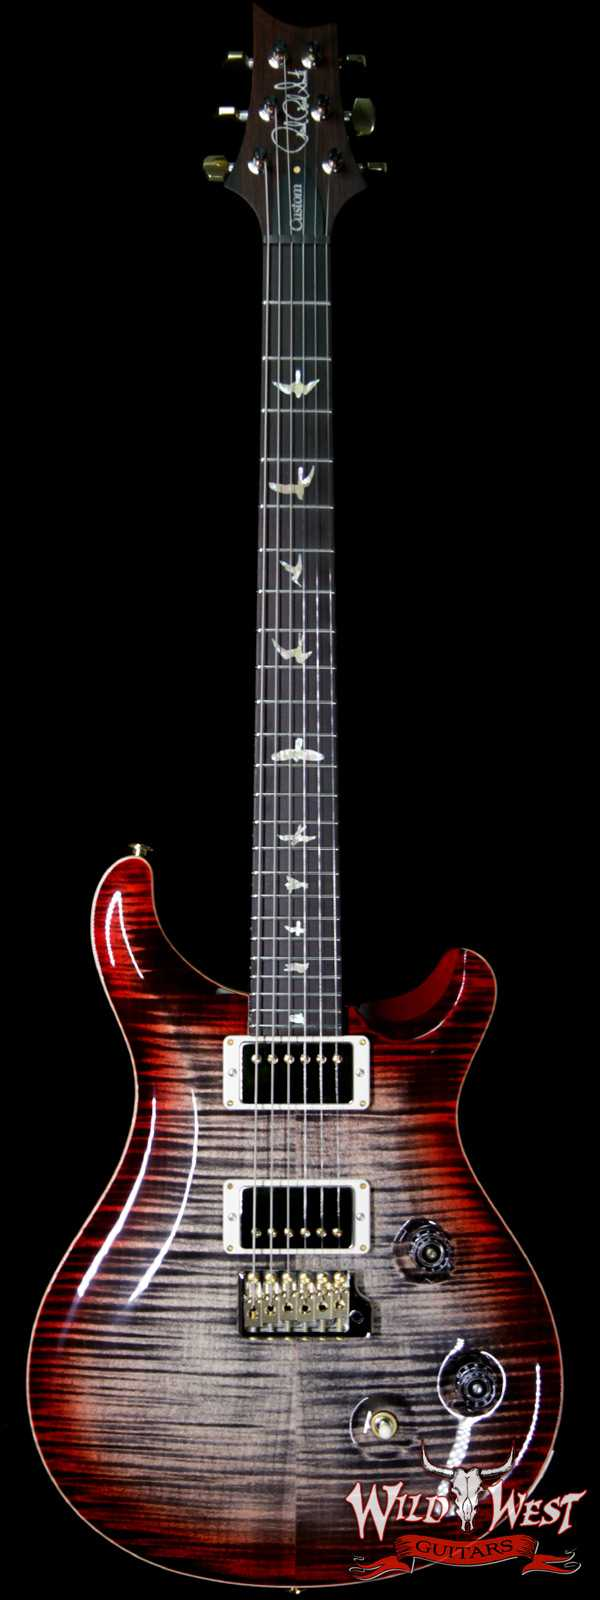 PRS Wood Library 10 Top Custom 24 Flame Maple Top Brazilian Rosewood Fingerboard Charcoal Cherry Burst